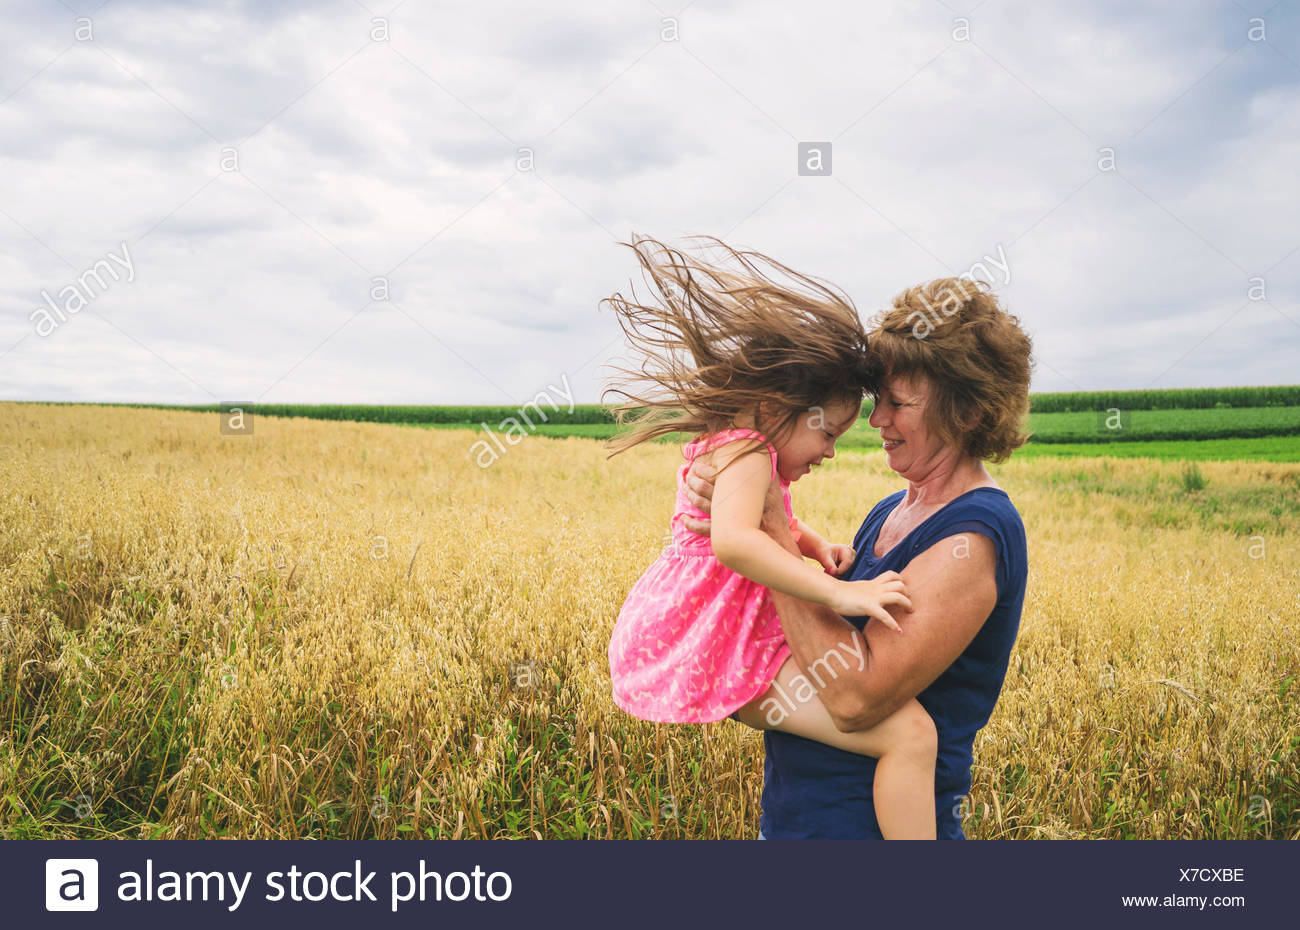 Mature women lifting up baby girl - Stock Image